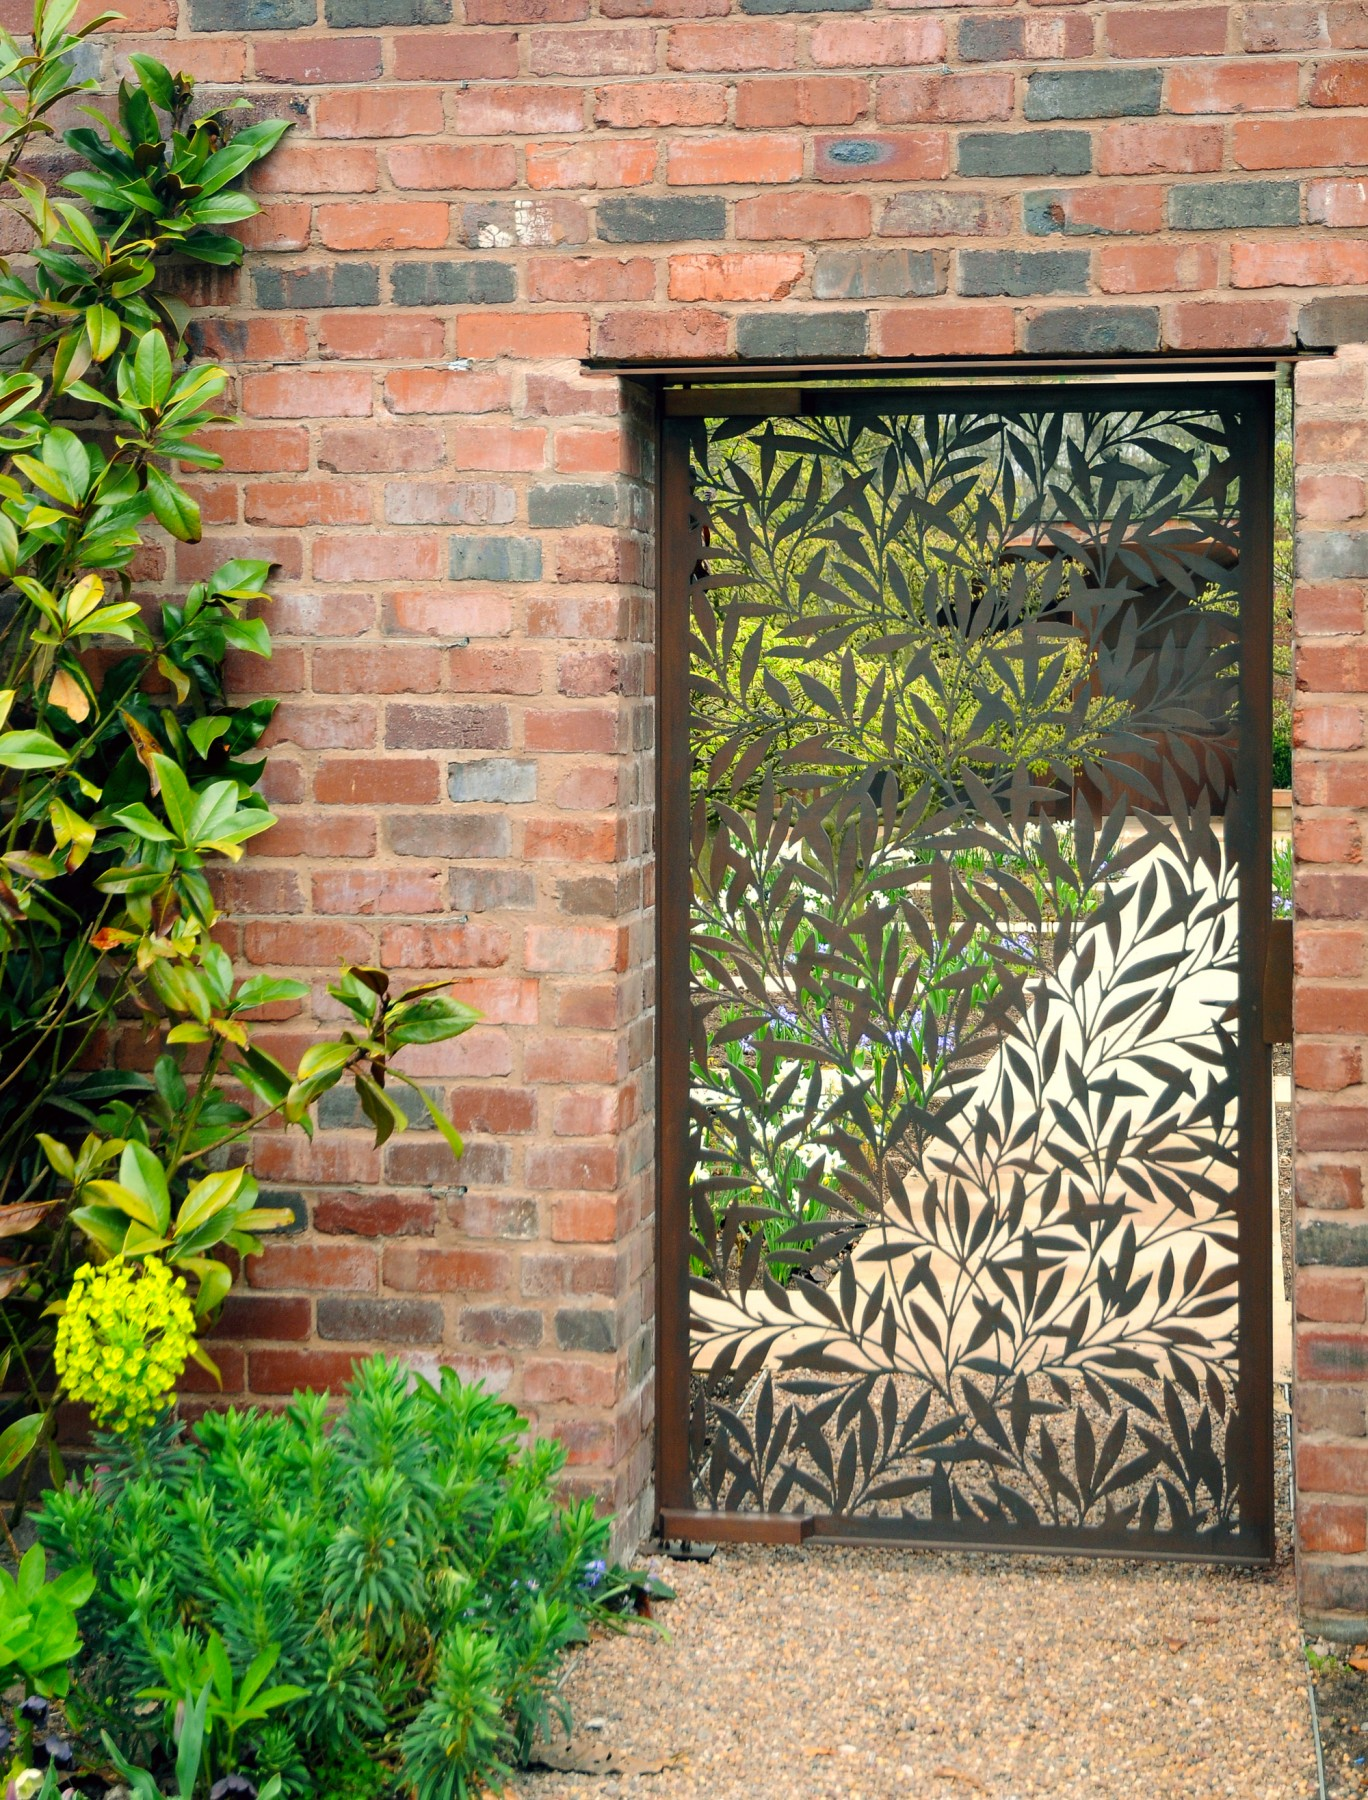 Garden-Grange-Pavilion-landscape-cheshire-cogshall-bronze-copper-room-gate-Tom-Stuart-smith-Jamie-Fobert-Architects-8